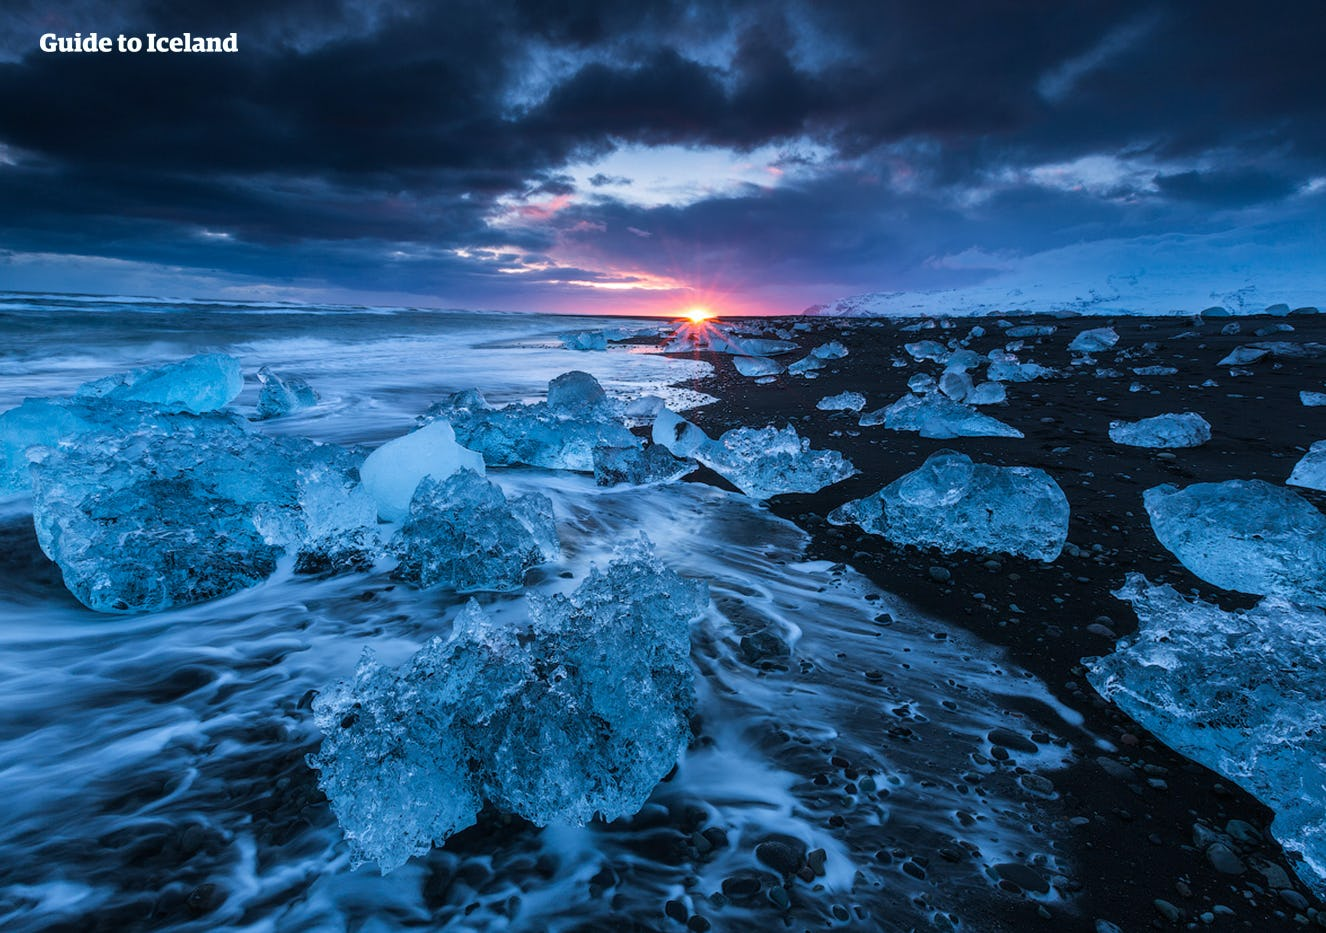 On a winter self-drive tour, you can visit the Diamond Beach in the evening and watch as the sun sets among glistening icebergs.